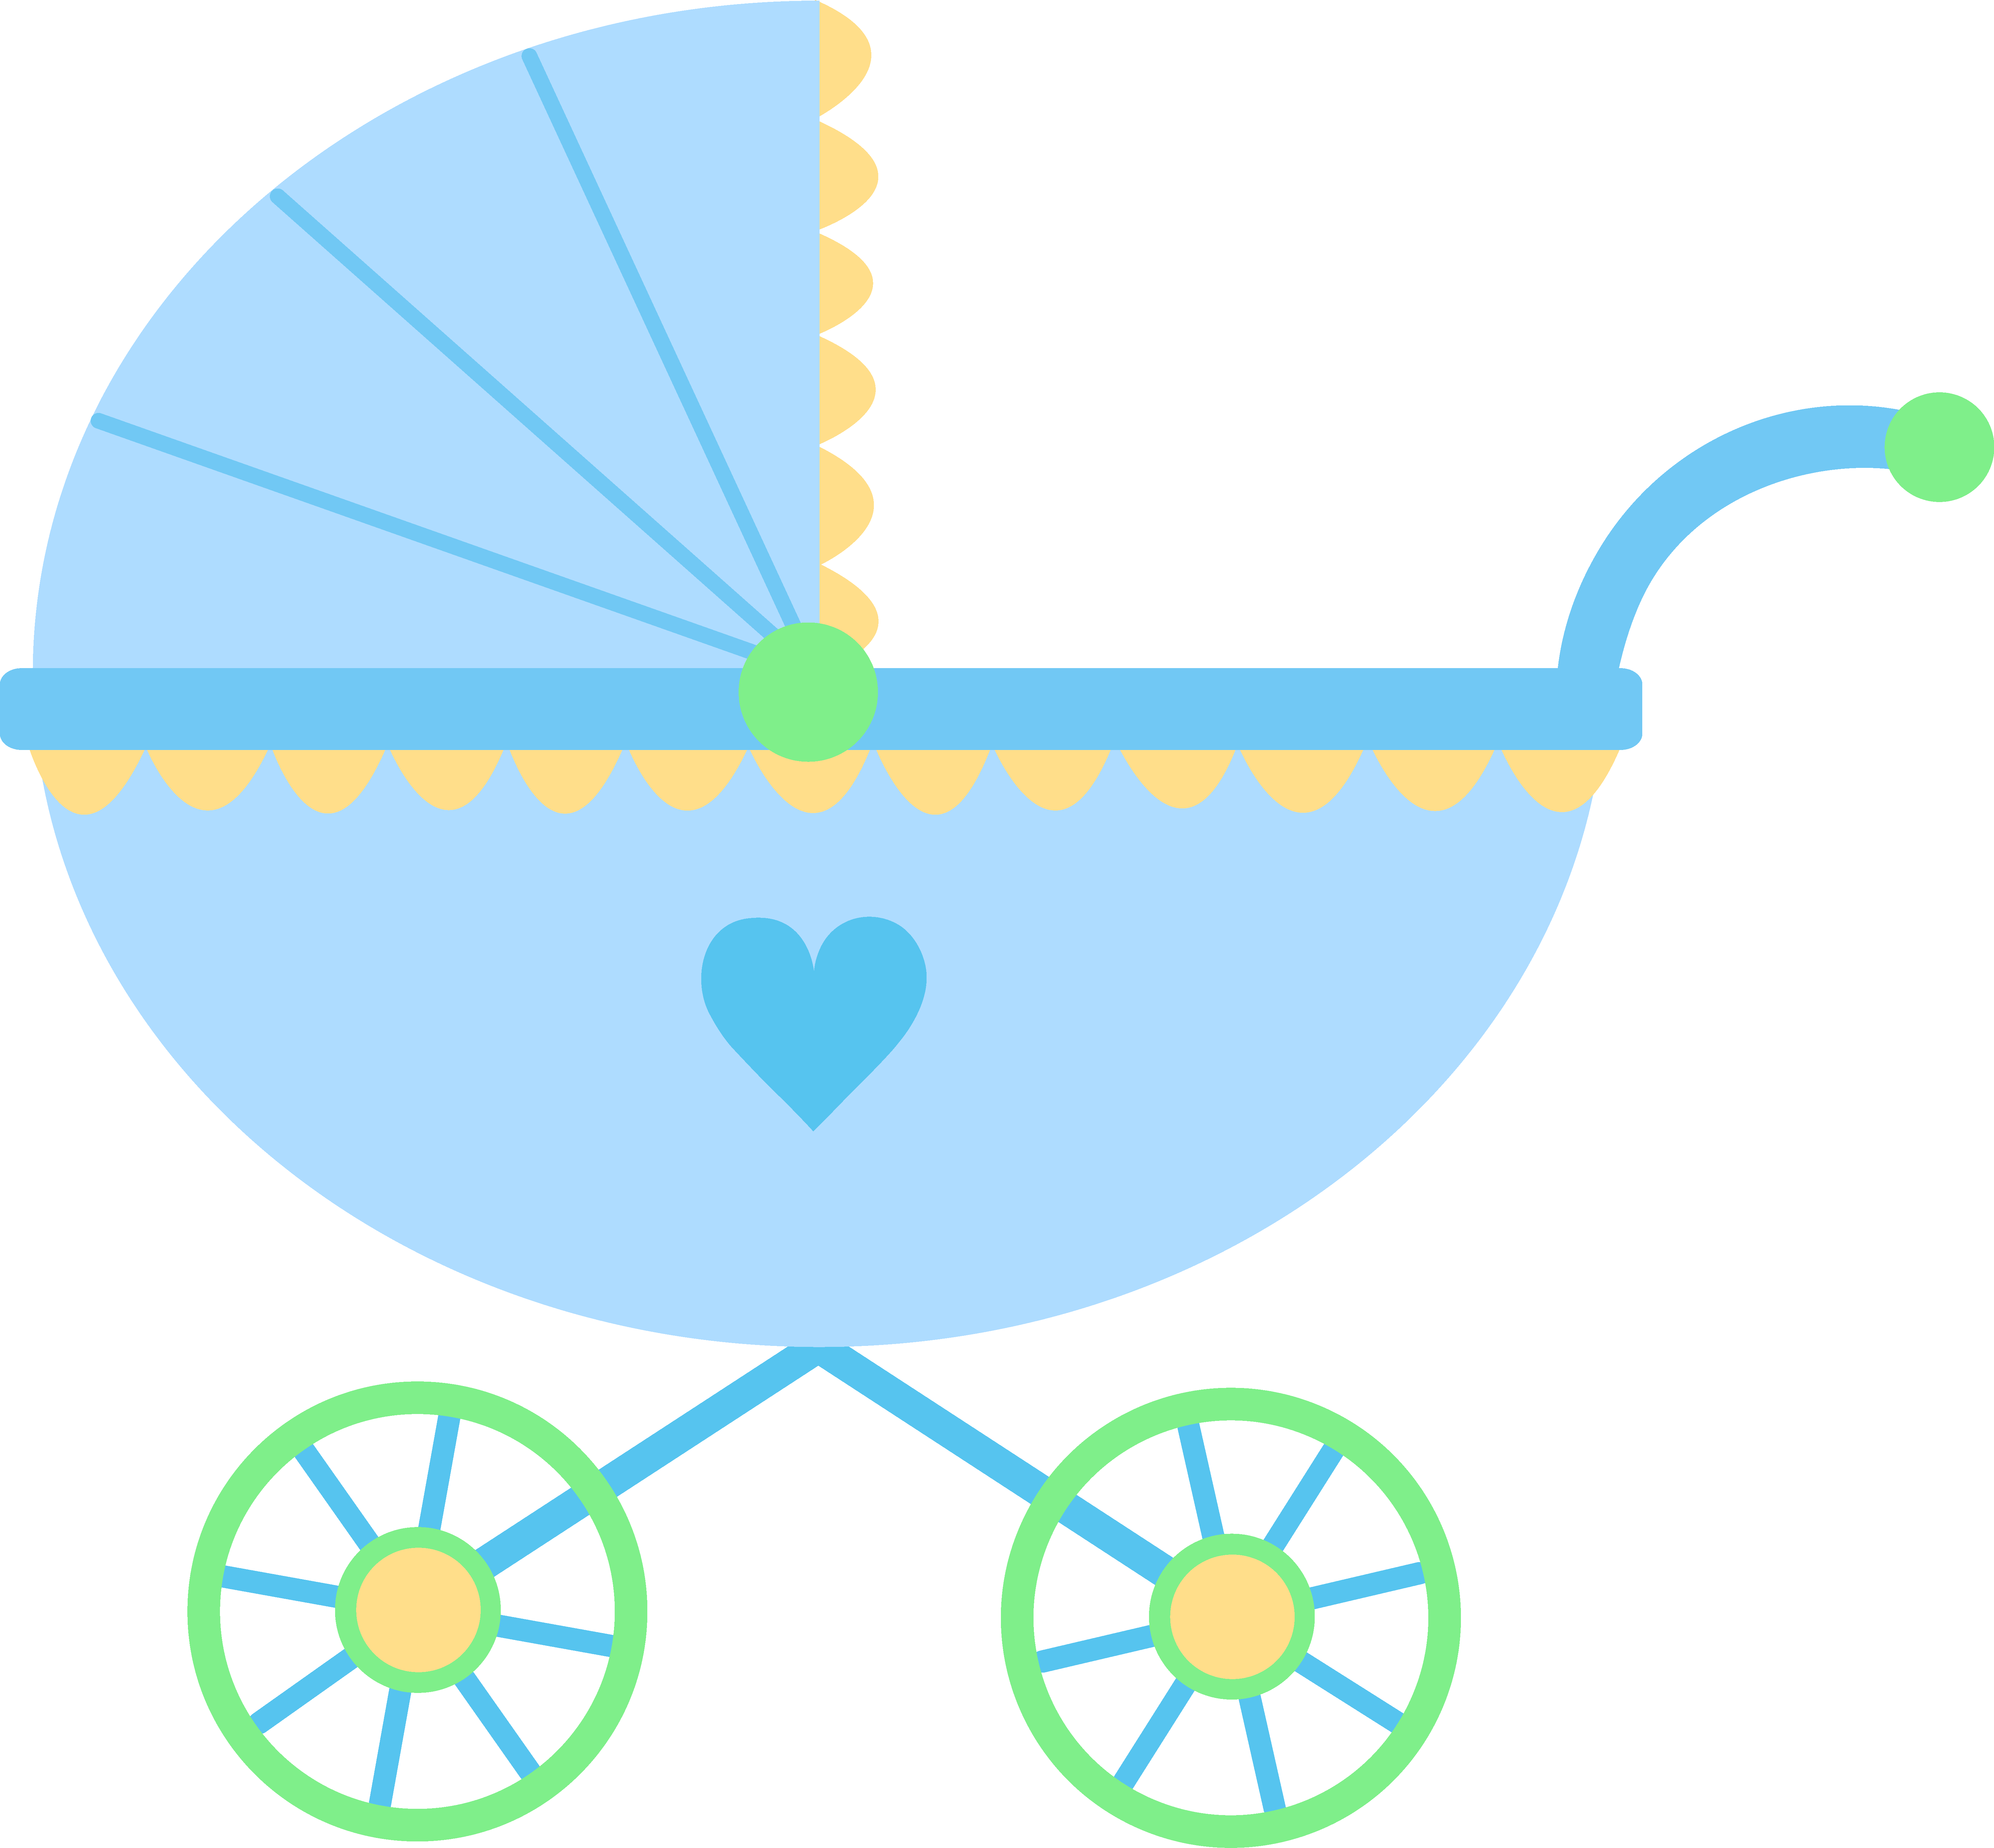 Baby Carriage Drawing at GetDrawings.com | Free for personal use ...